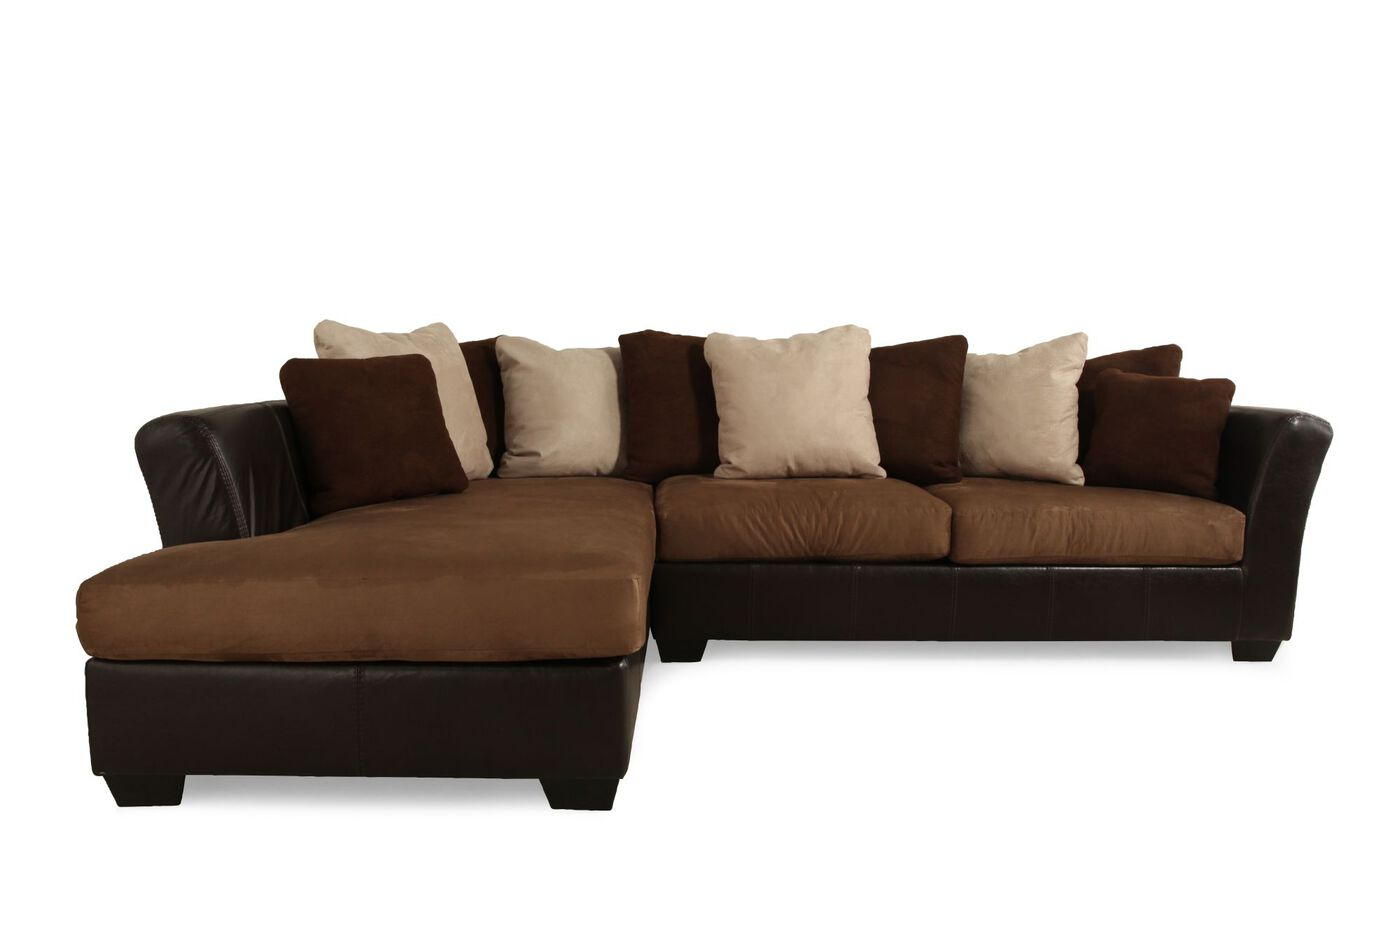 Mocha sectional sofa large microfiber u shape sectional for Furniture 2 u